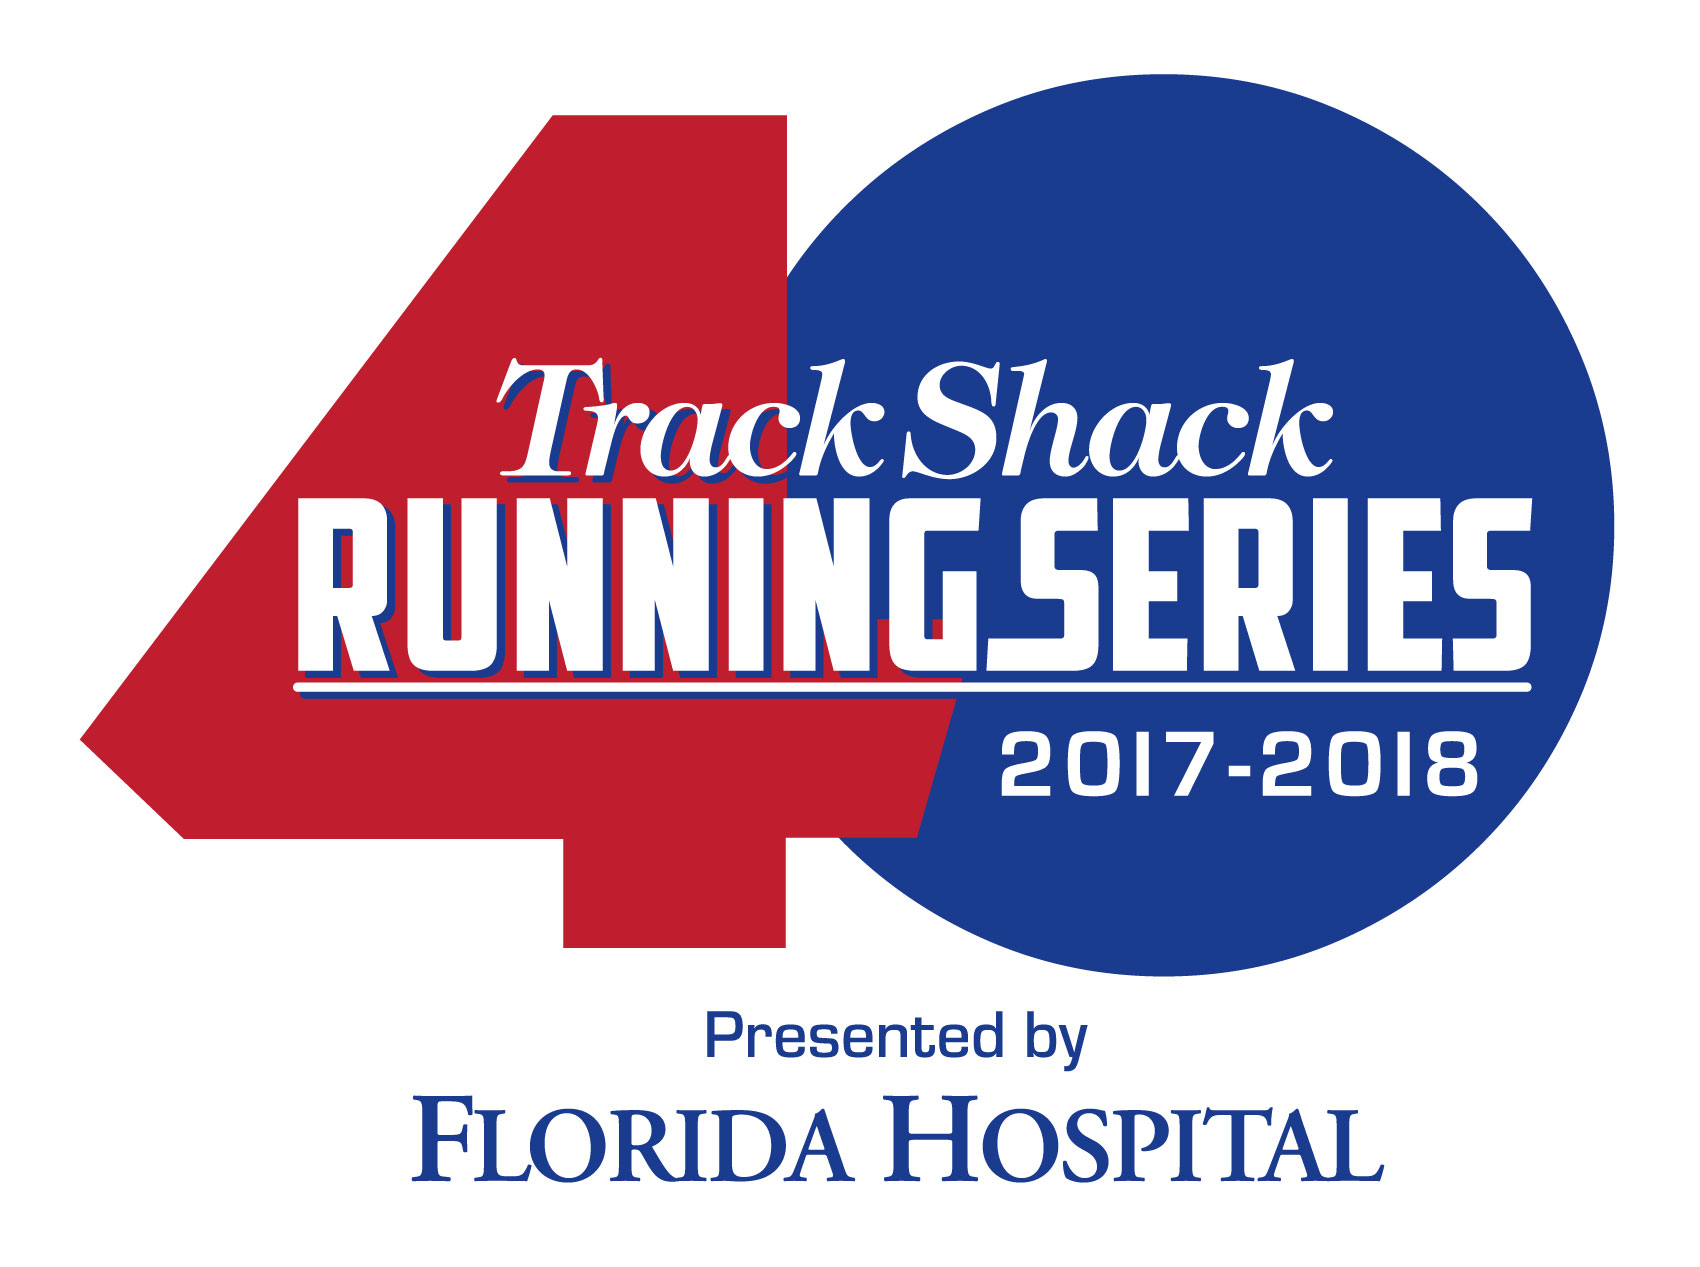 Track Shack running series